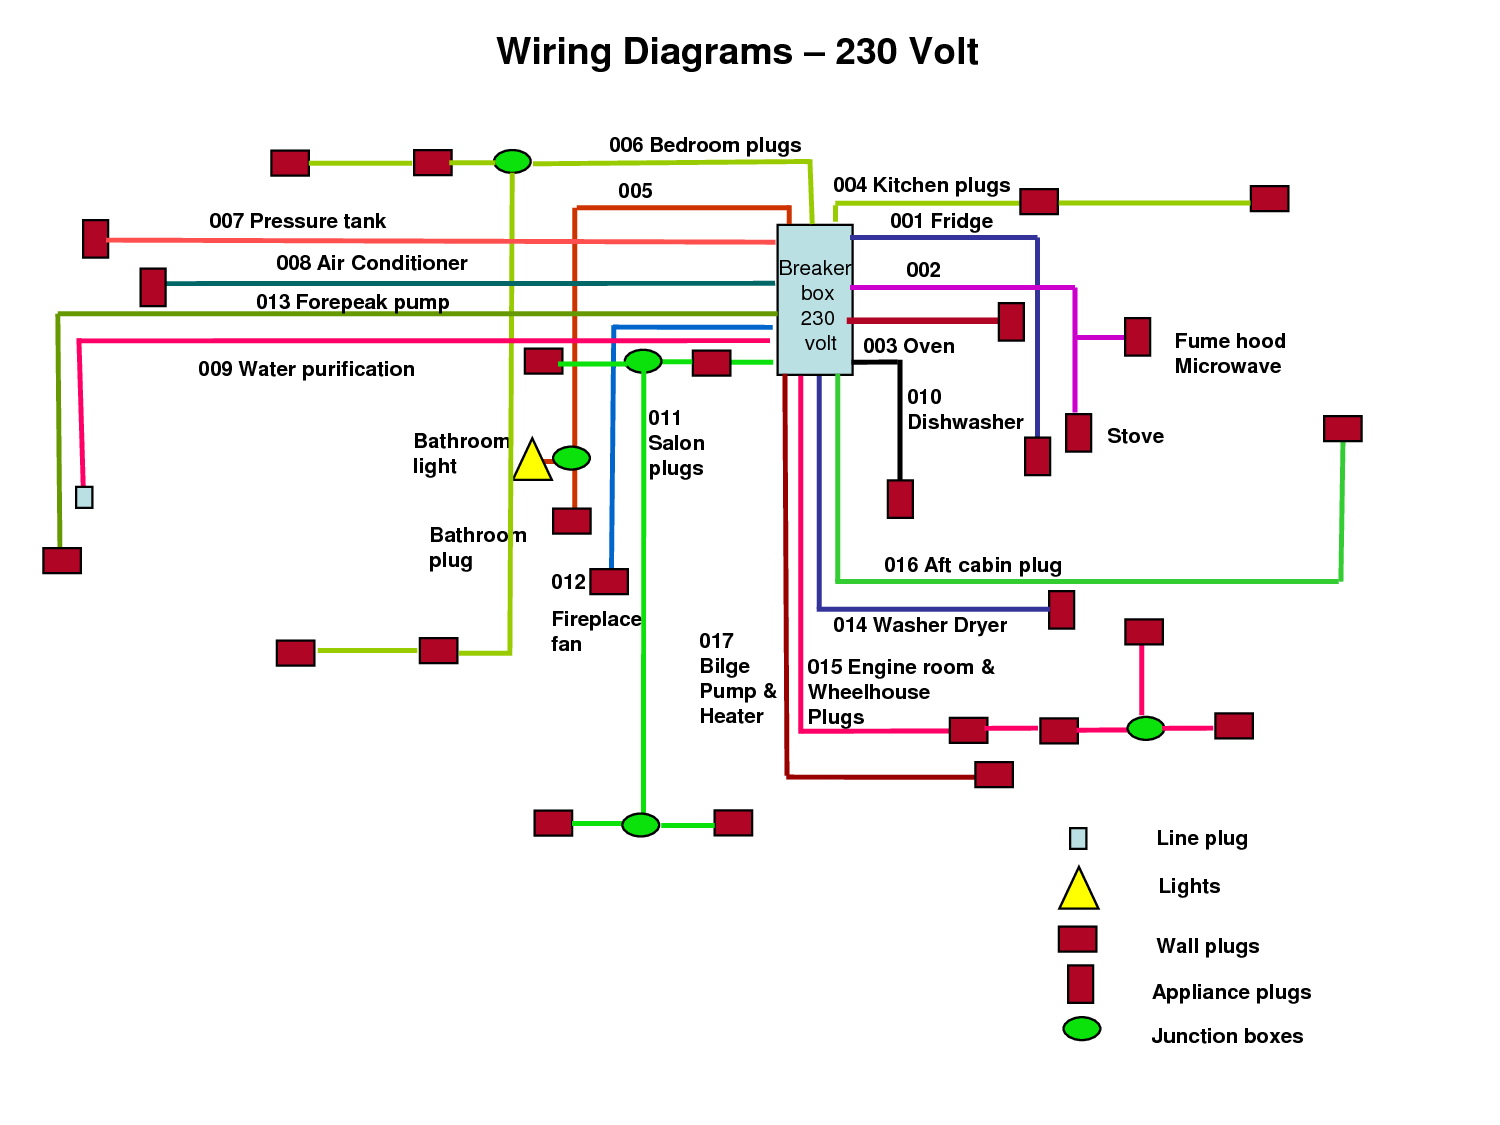 Electric Work: Wiring Diagram  230 Volt